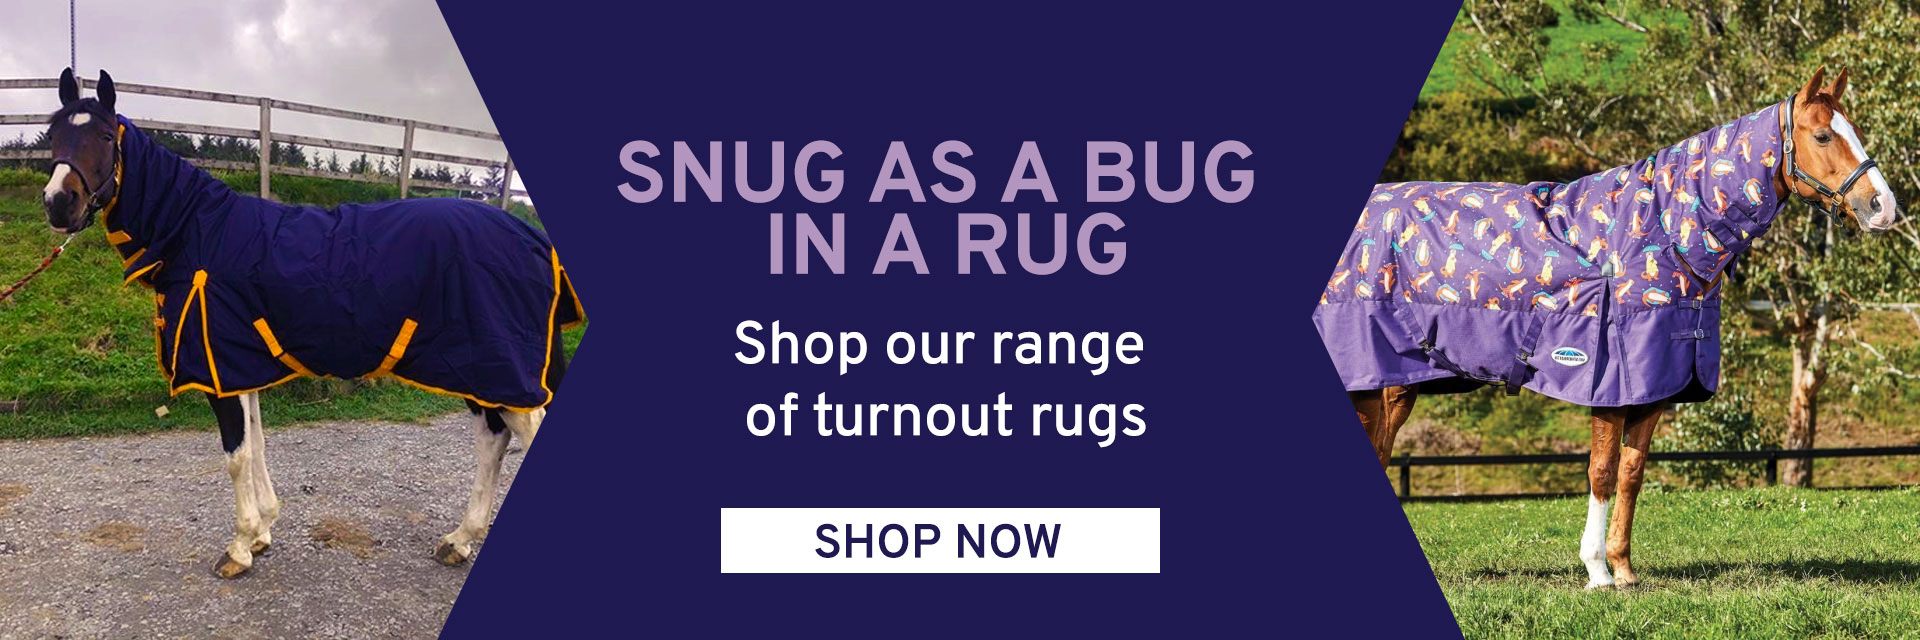 Shop our turnout rugs